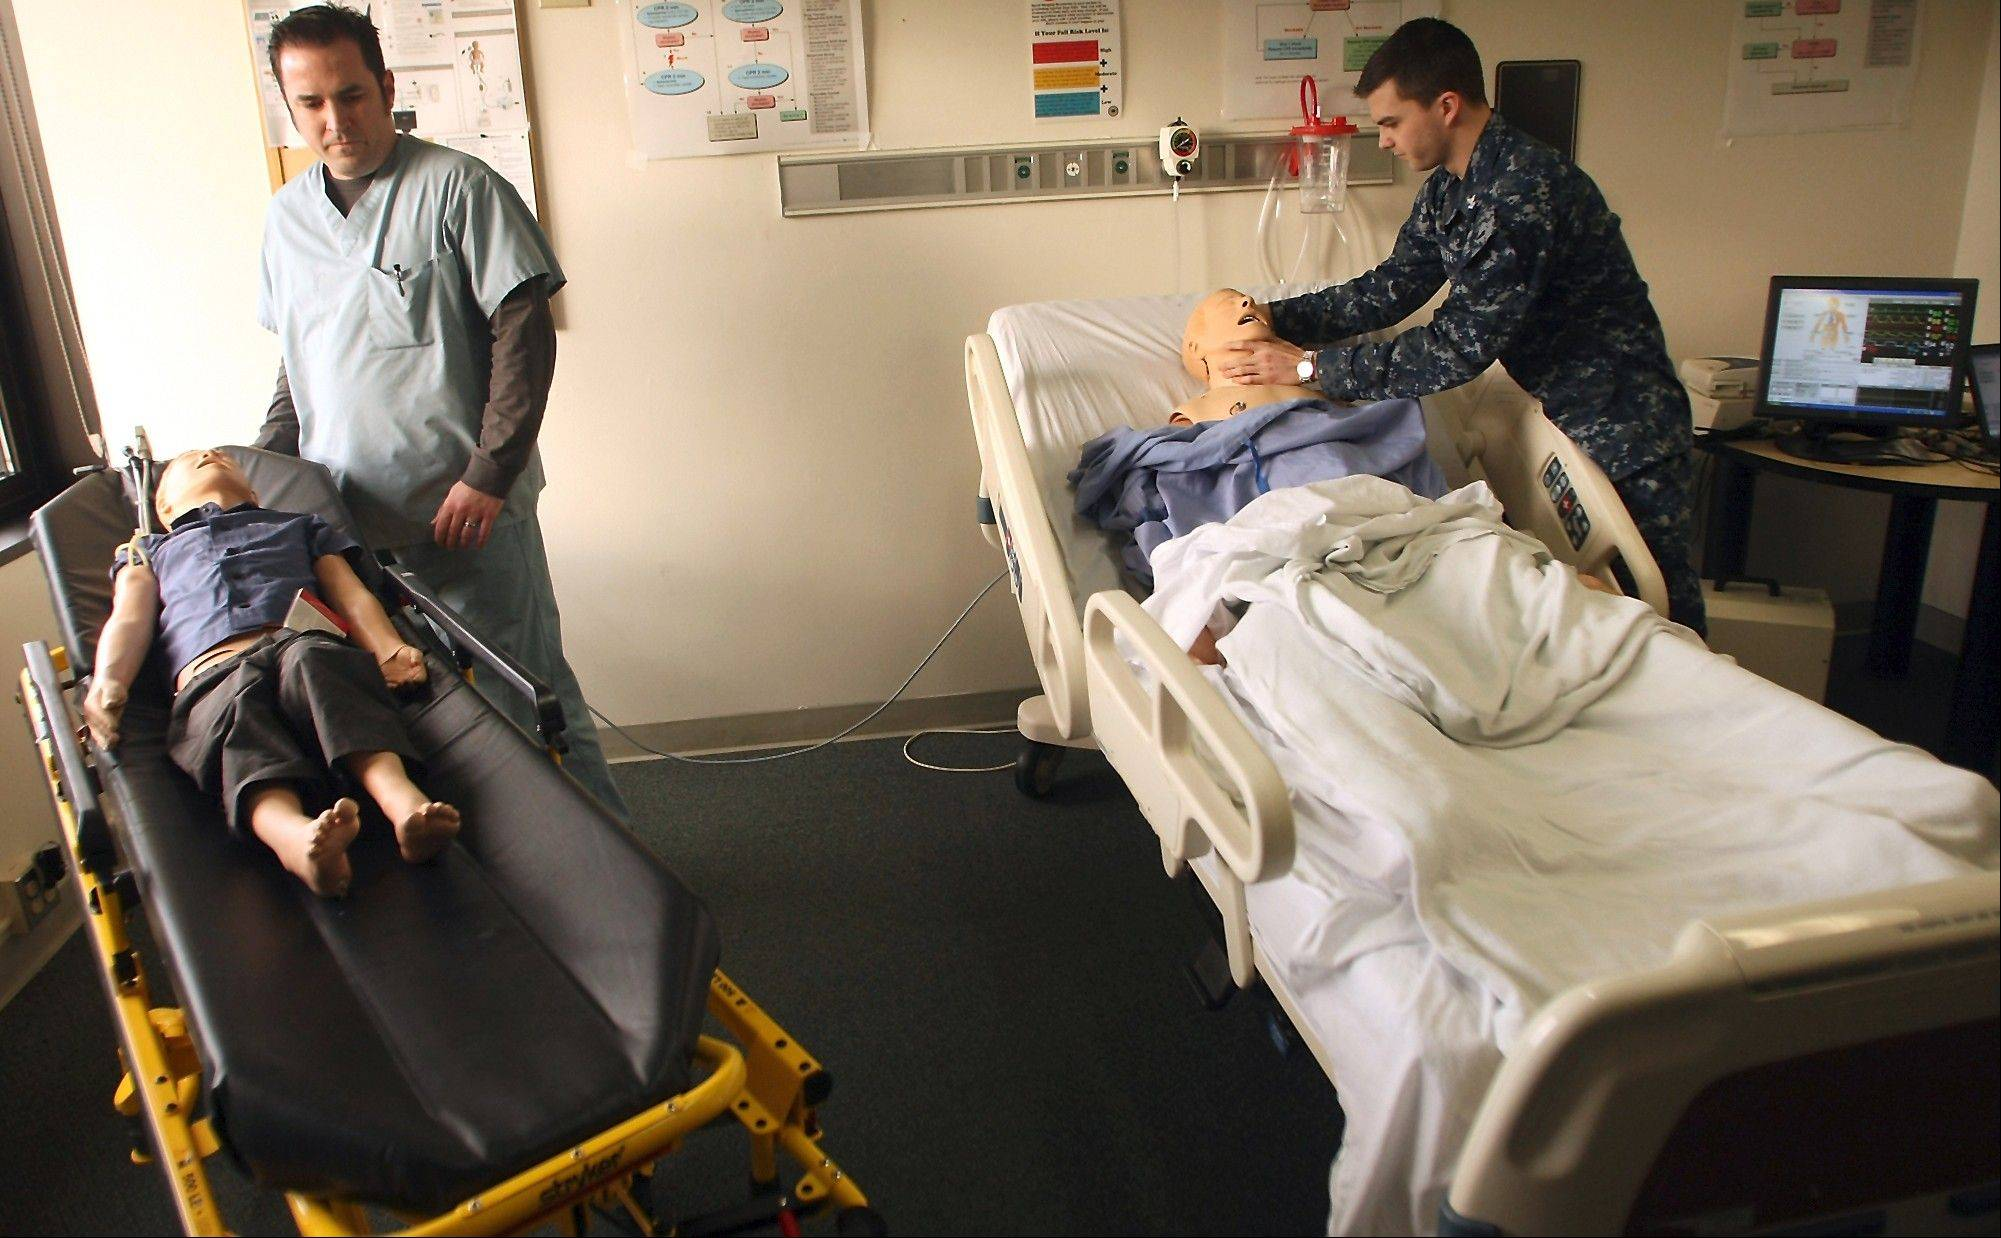 Simulator operator Doug Jones, left, and Corpsman 2nd Class Blake Hite, right, get a pair of patient simulators ready for students at the Naval Hospital Bremerton.